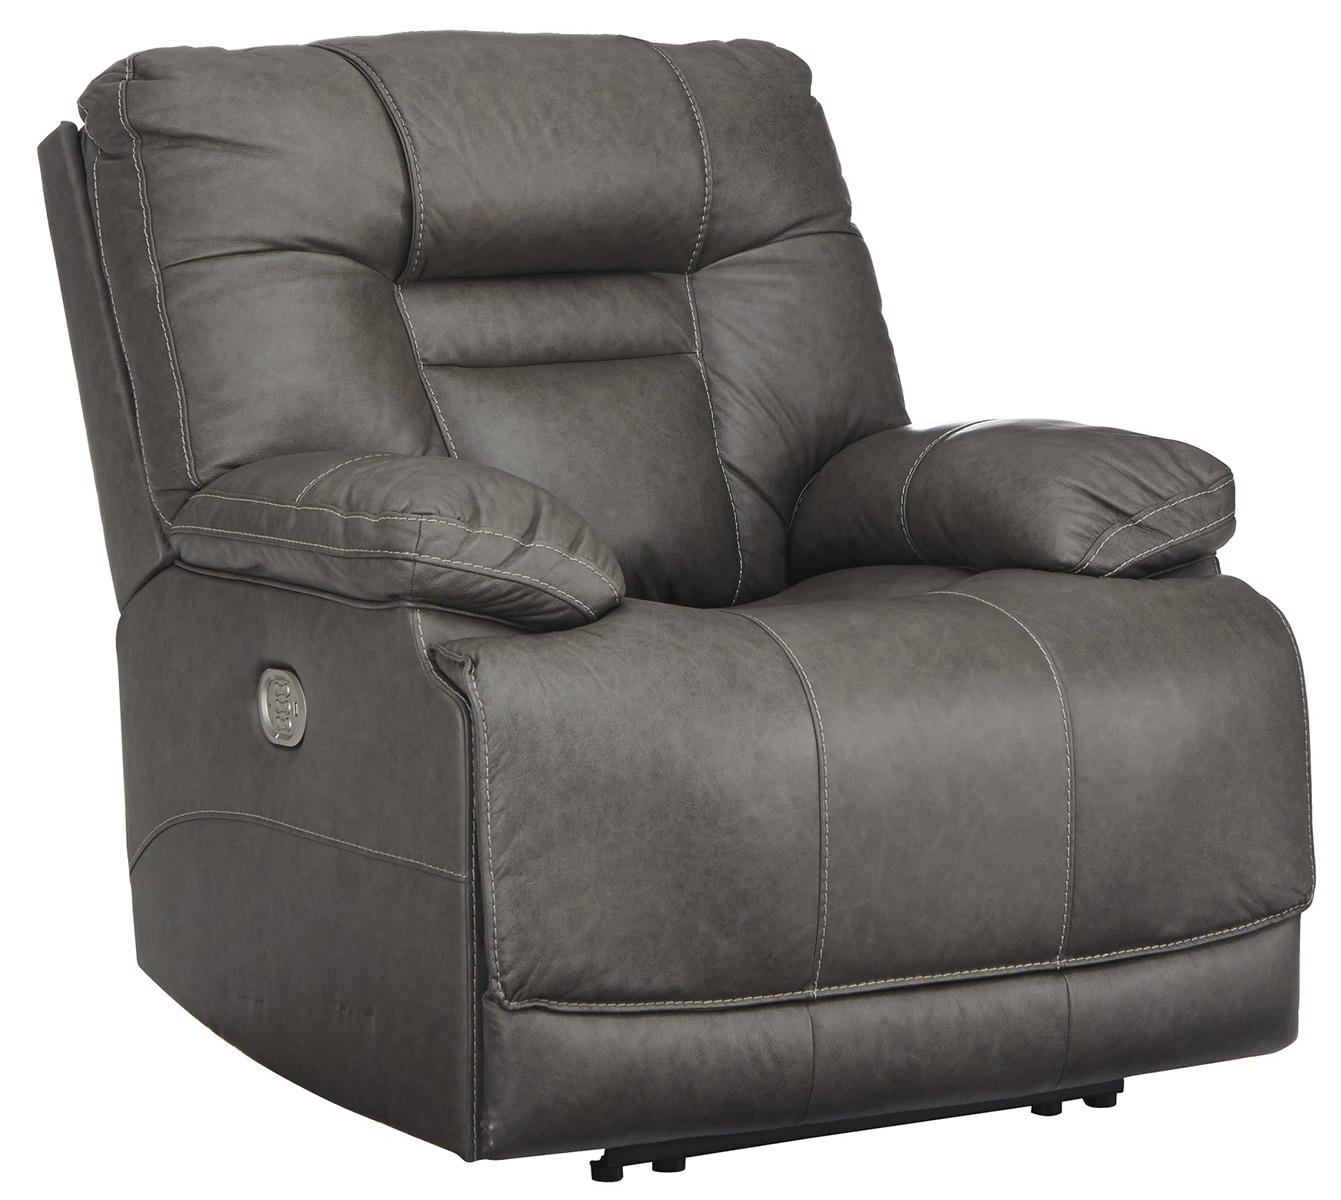 Wurstrow Power Recliner With Adjustable Headrest In Smoke